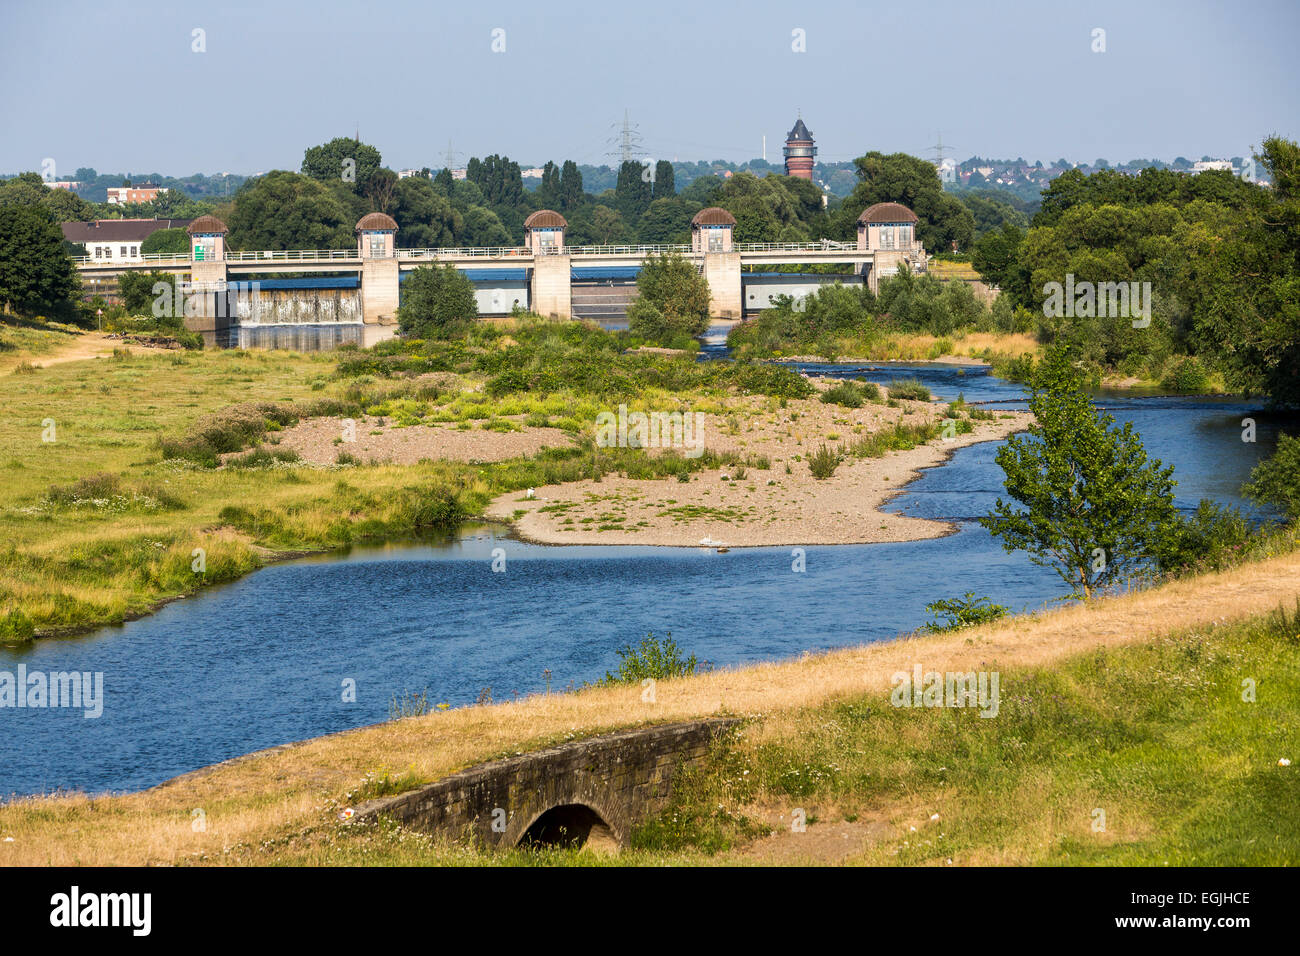 River Ruhr, dam, Raffelberg in Mülheim, Germany Stock Photo